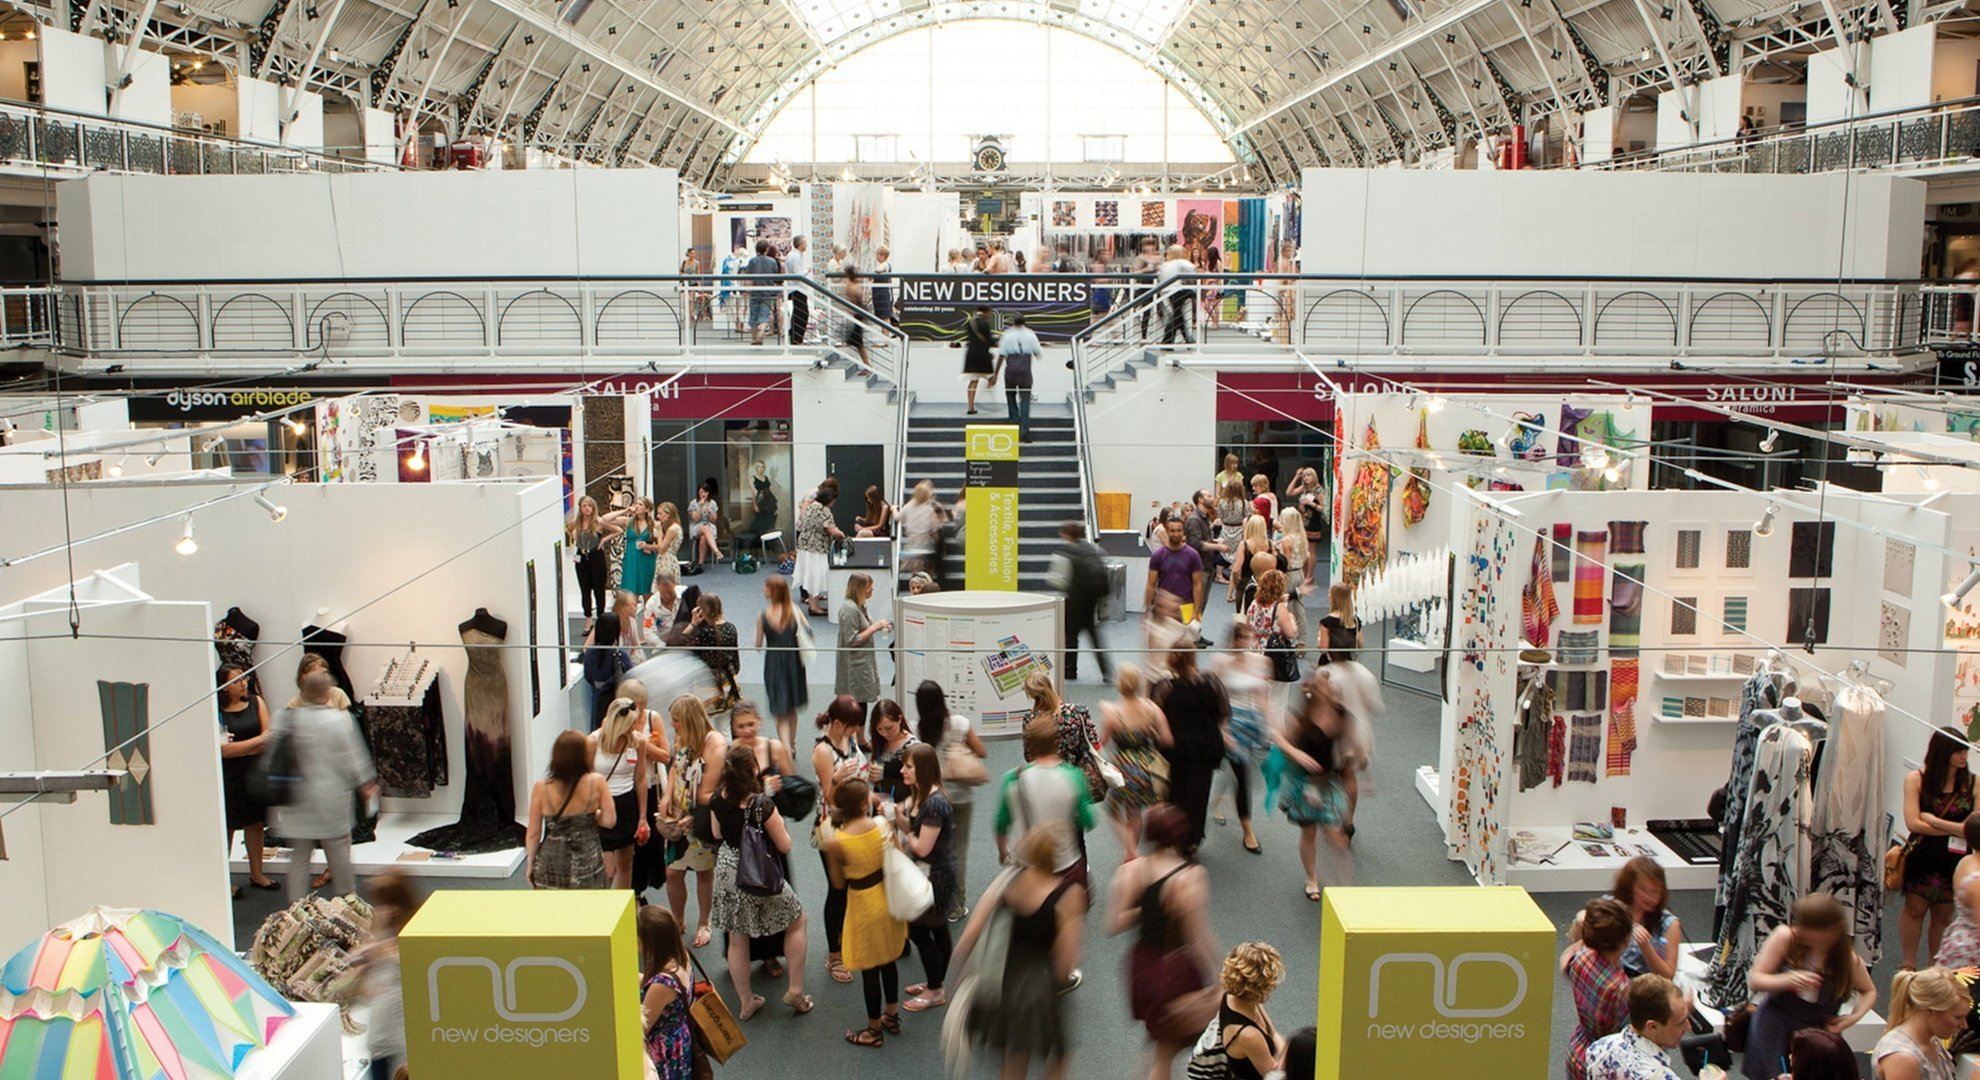 New Designers Interior Design Exhibition 2019